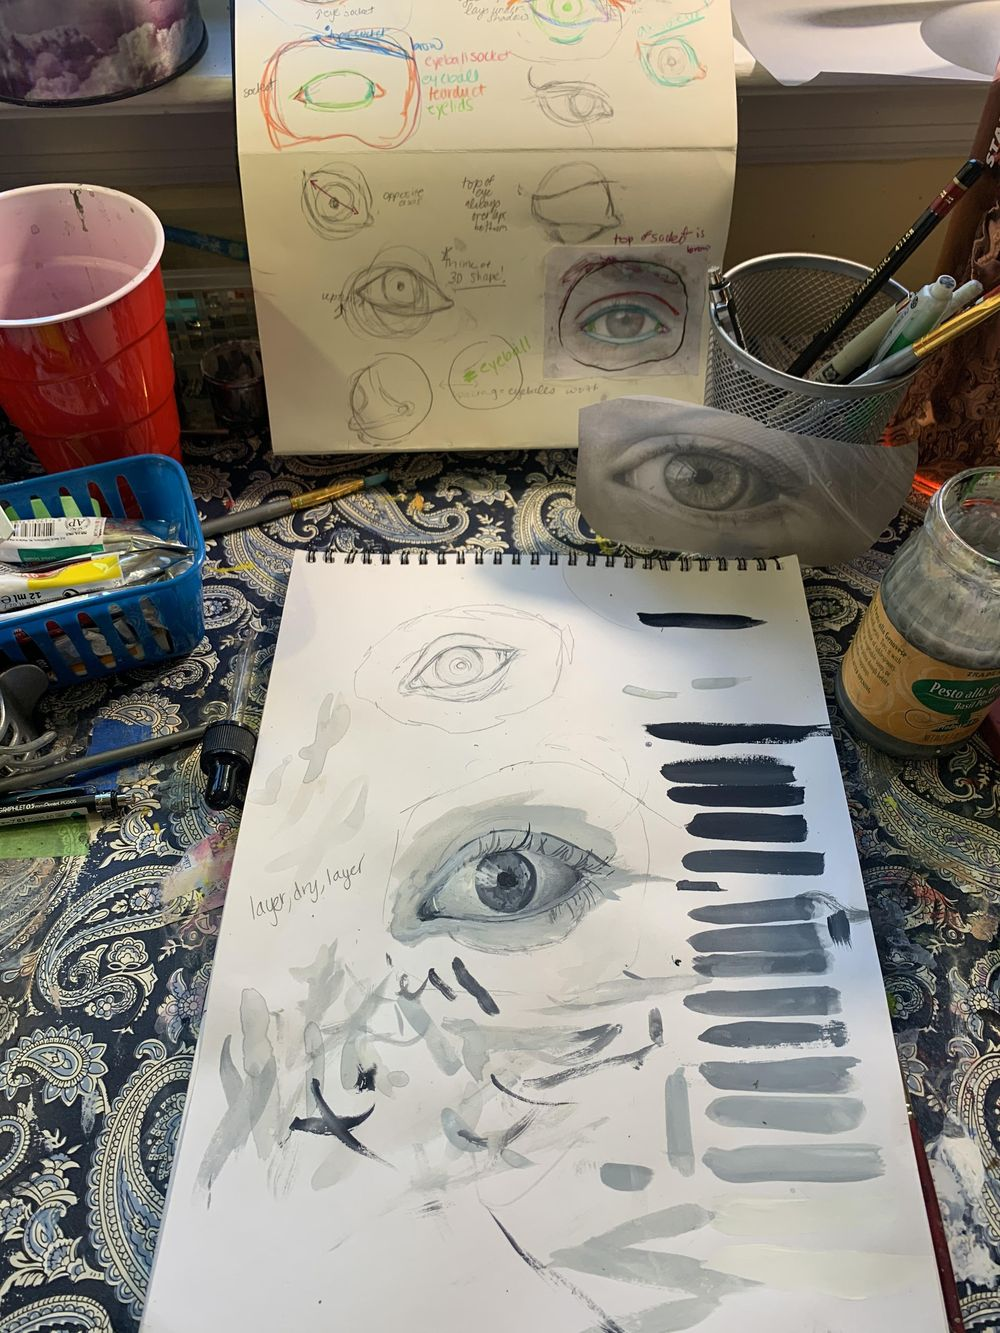 All About Eyes - image 1 - student project